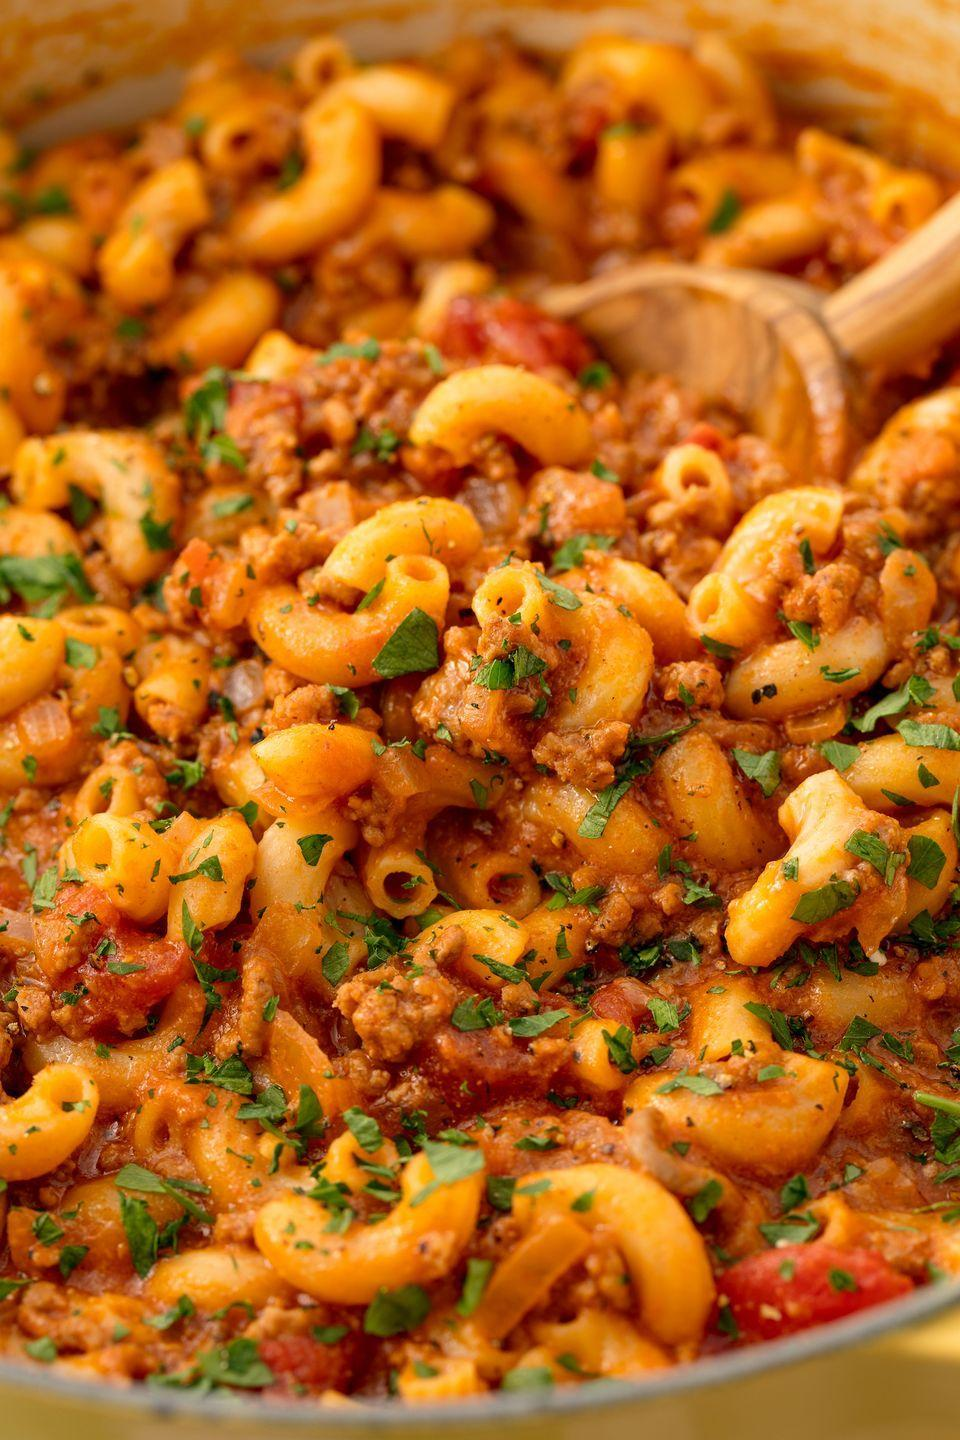 """<p><a href=""""https://www.delish.com/cooking/menus/g1467/one-skillet-dinners/"""" rel=""""nofollow noopener"""" target=""""_blank"""" data-ylk=""""slk:One skillet dinners"""" class=""""link rapid-noclick-resp"""">One skillet dinners</a> are the BEST.</p><p>Get the recipe from <a href=""""https://www.delish.com/cooking/recipe-ideas/recipes/a55501/best-goulash-recipe/"""" rel=""""nofollow noopener"""" target=""""_blank"""" data-ylk=""""slk:Delish"""" class=""""link rapid-noclick-resp"""">Delish</a>.</p>"""